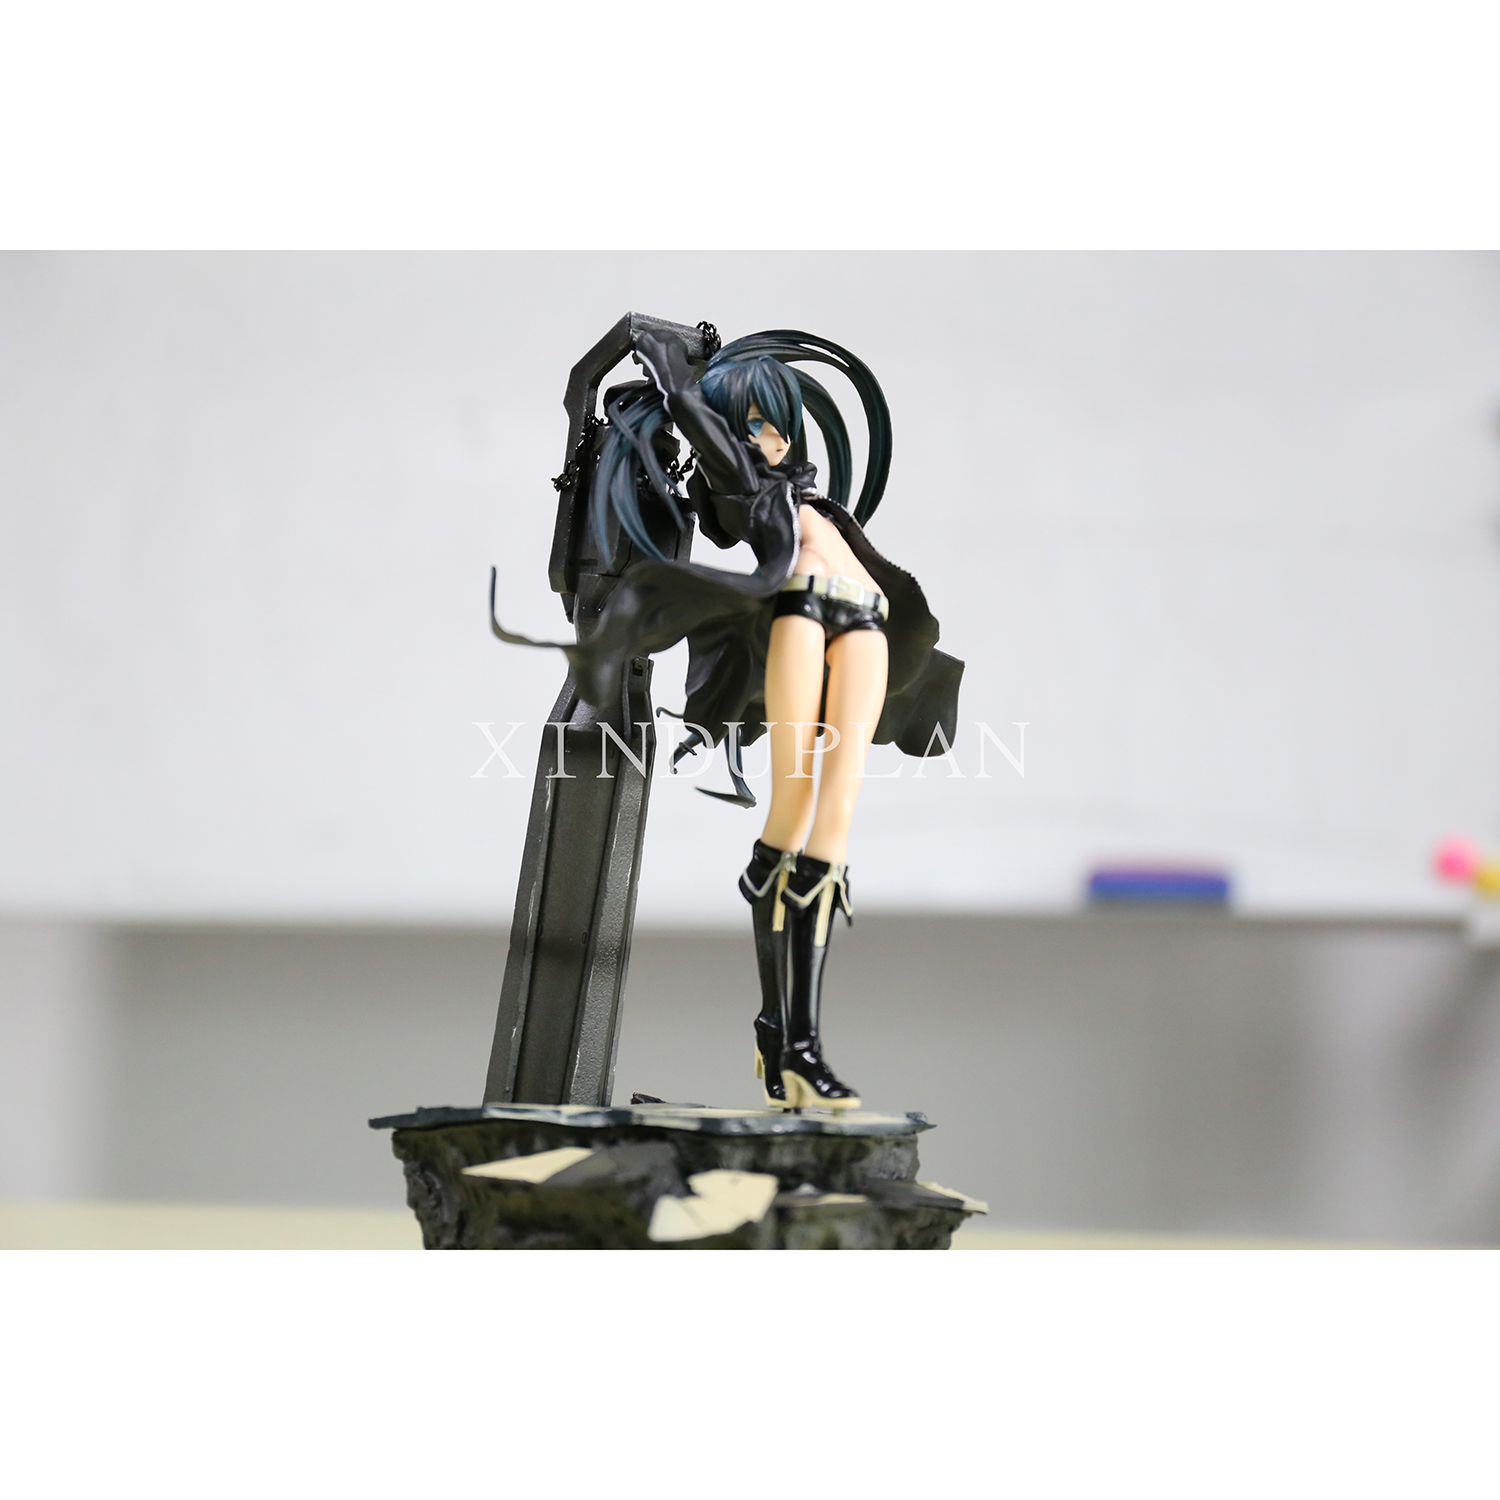 XINDUPLAN VOCALOID Anime Hatsune Miku Black Rock Shooter